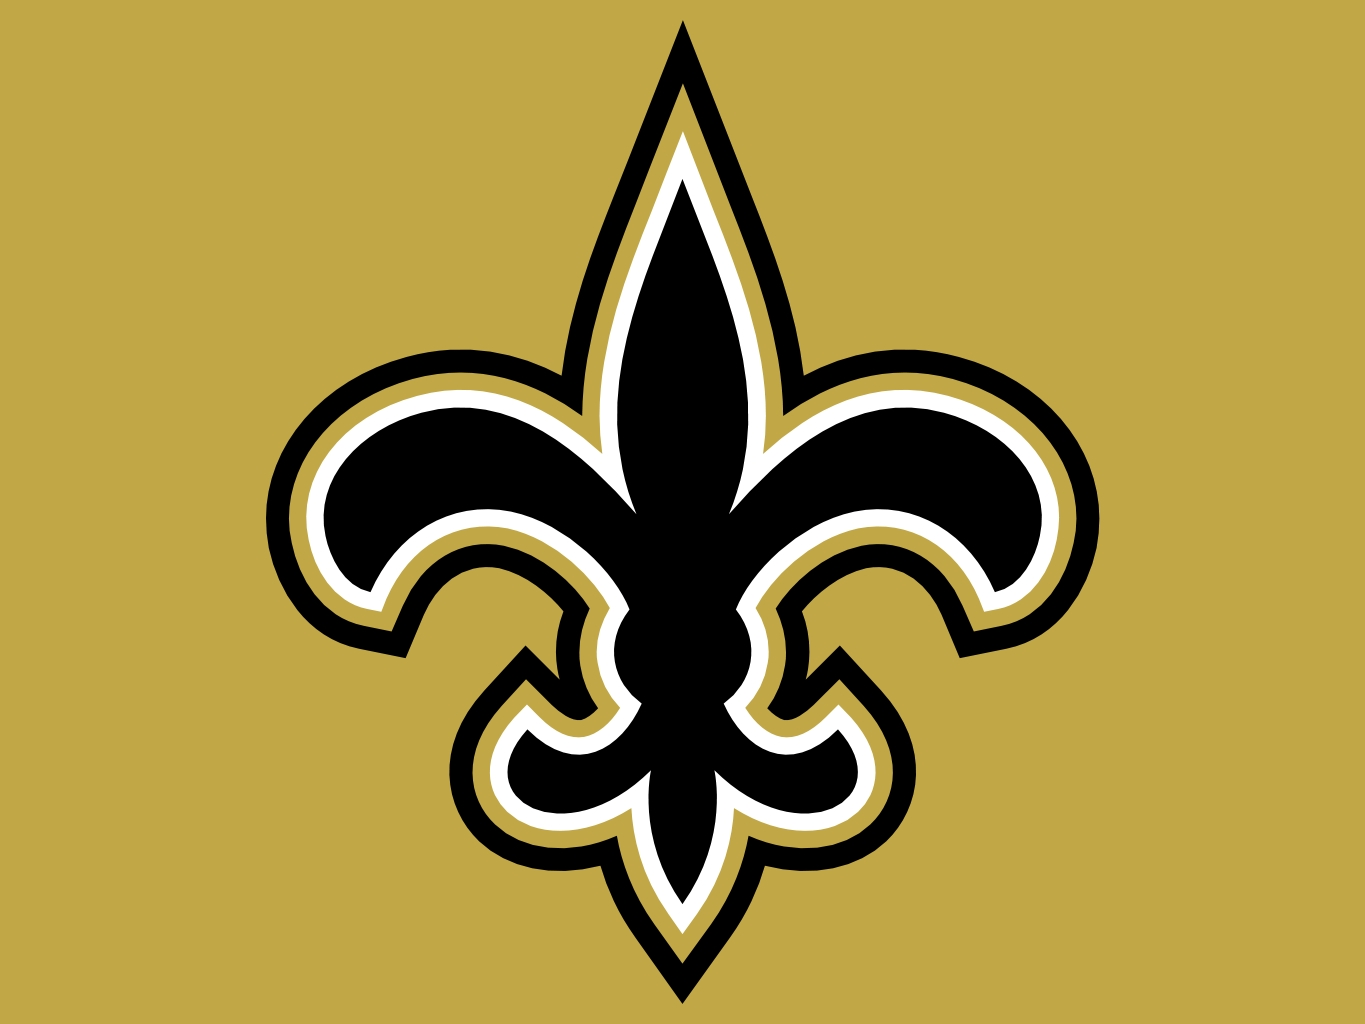 new orleans saints logo in gold background2 1365x1024